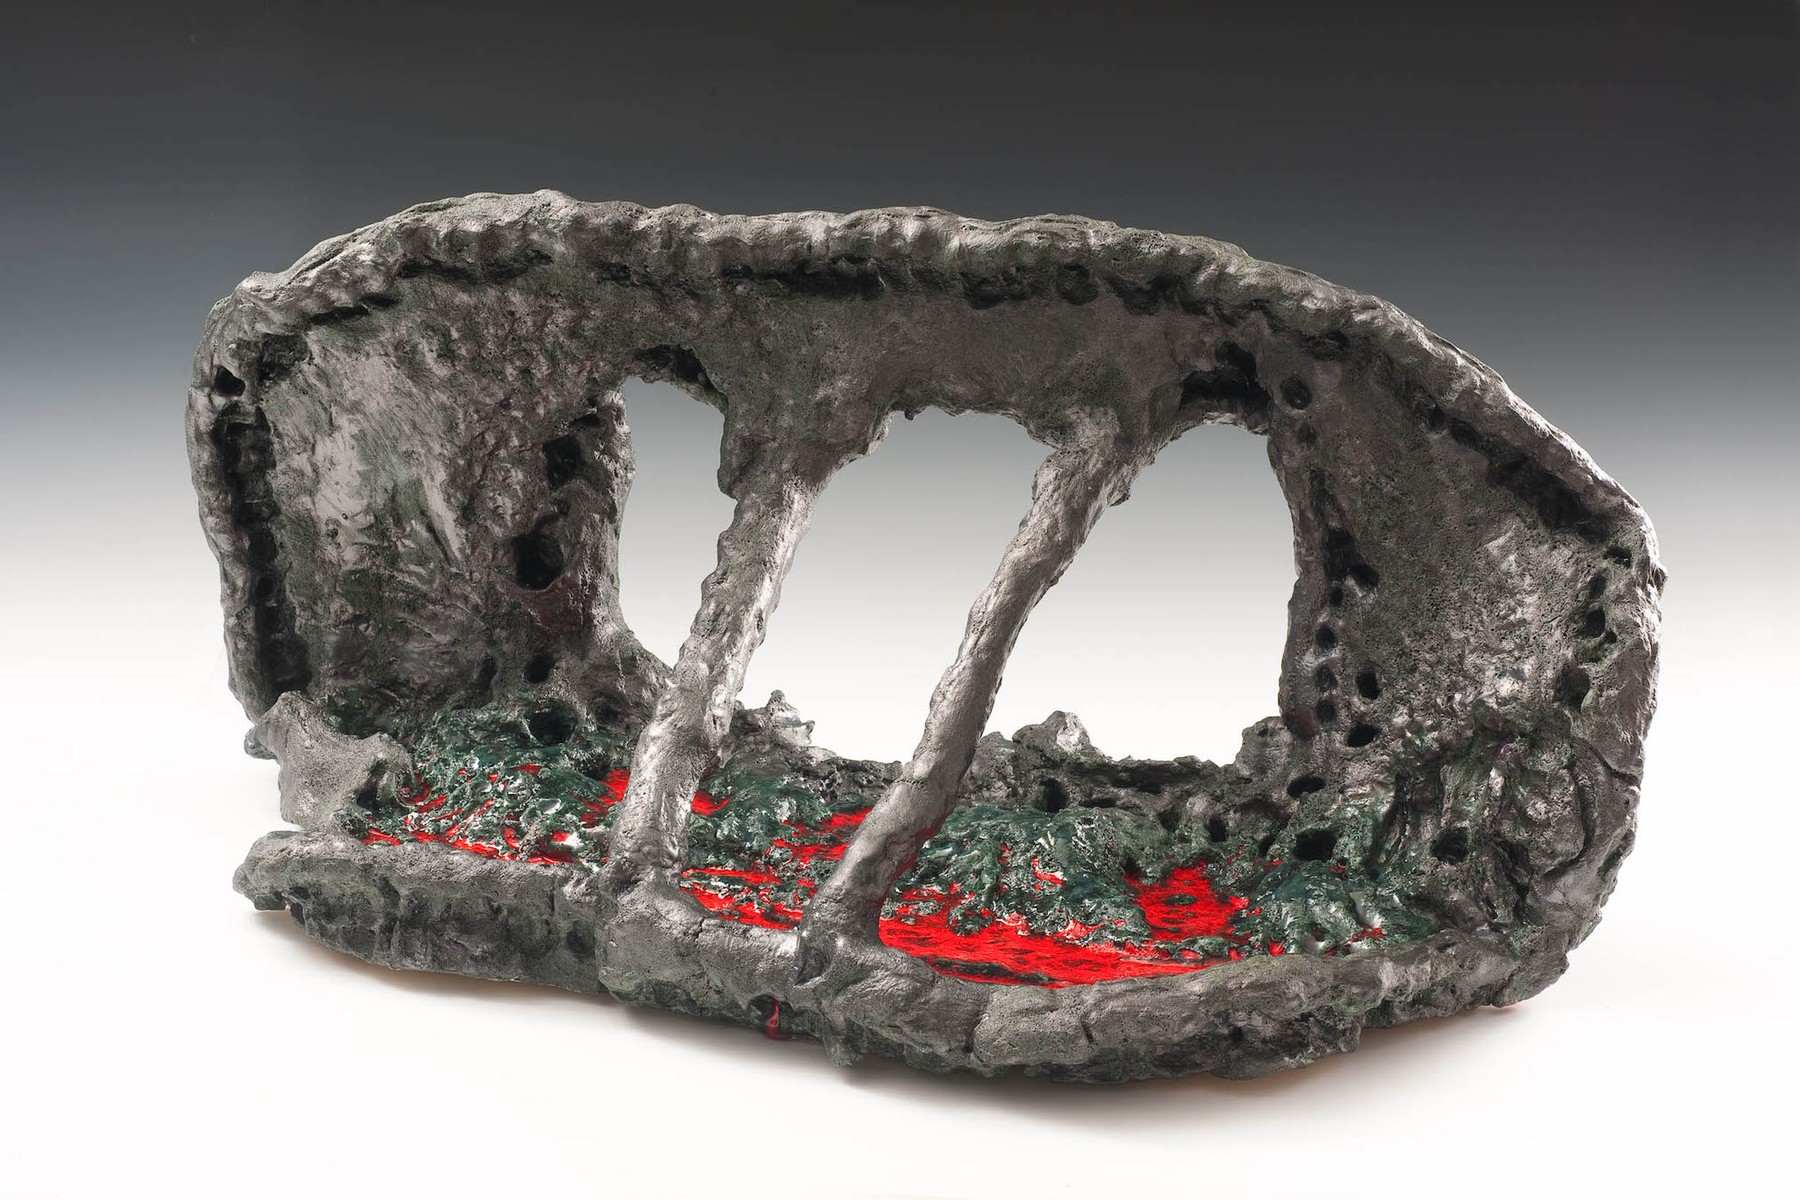 sterling-ruby-drive-thru-pewter-facial-2010.-ceramic.-courtesy-sterling-ruby-studio-and-thomas-h.-lee-and-ann-tenenbaum.-pho...